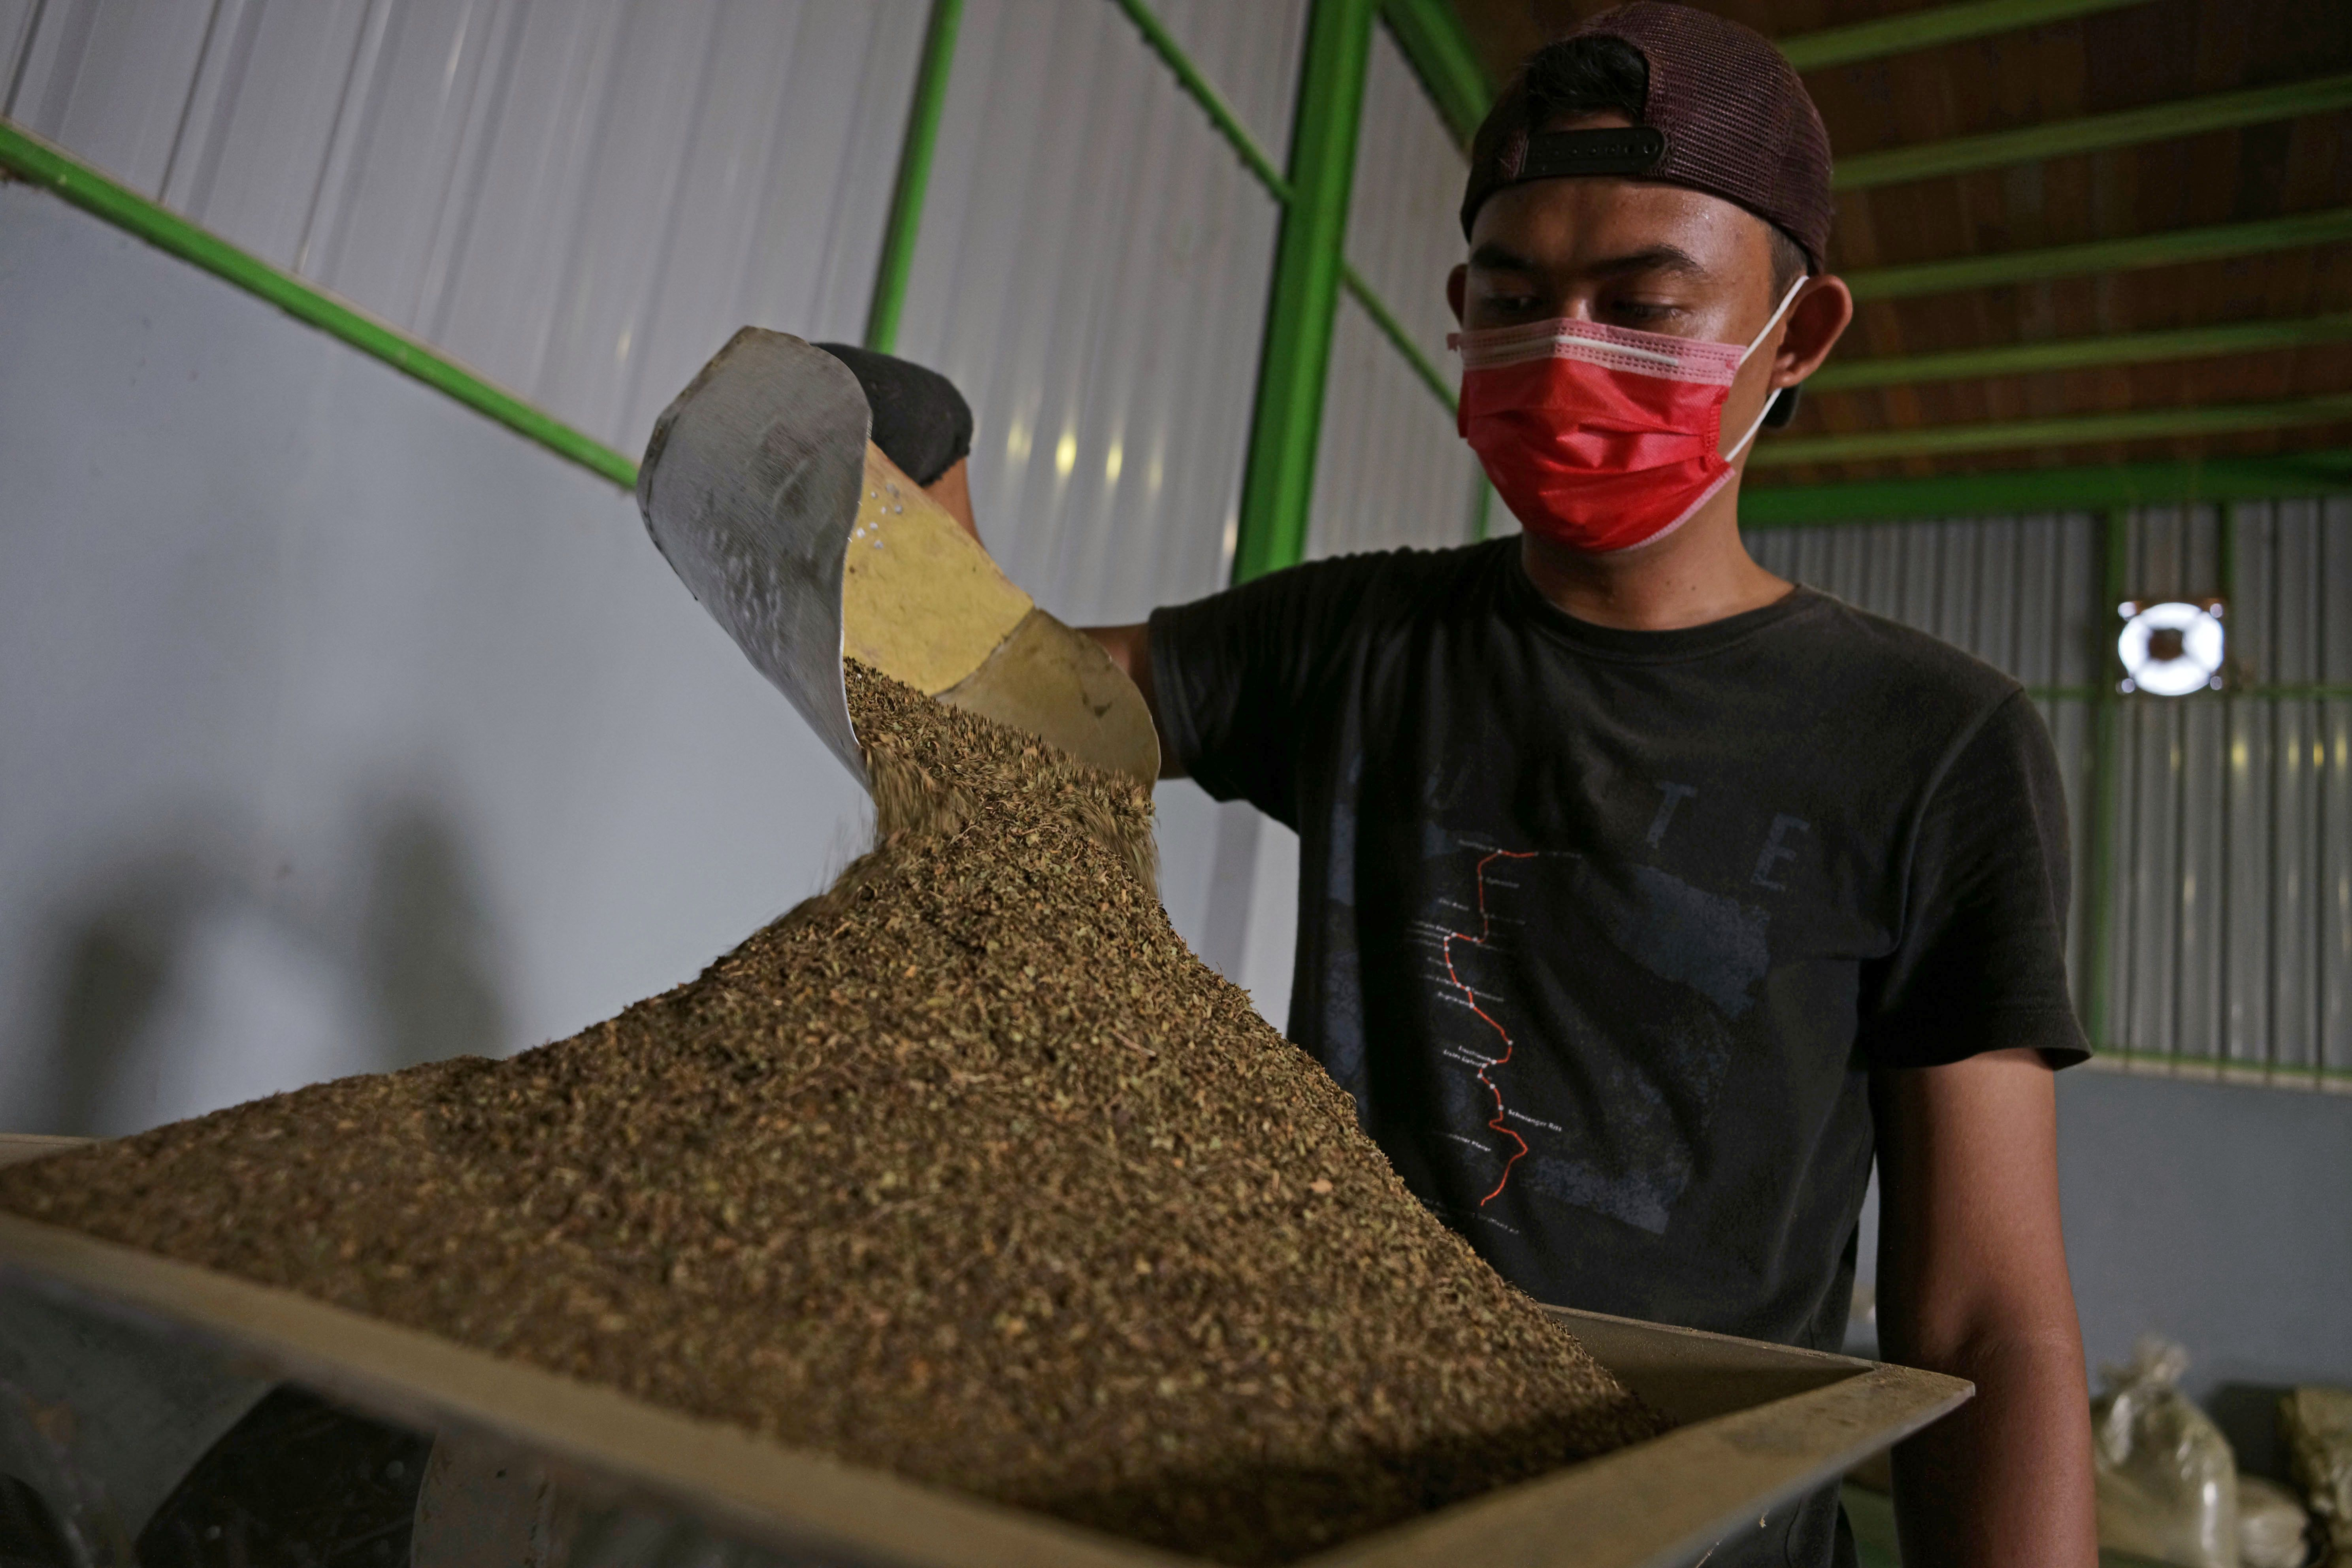 A worker pours finely ground kratom leaves into a machine to be processed into powder at a facility in Kapuas Hulu, West Kalimantan, Indonesia. Most raw kratom comes to the U.S. from Southeast Asia.